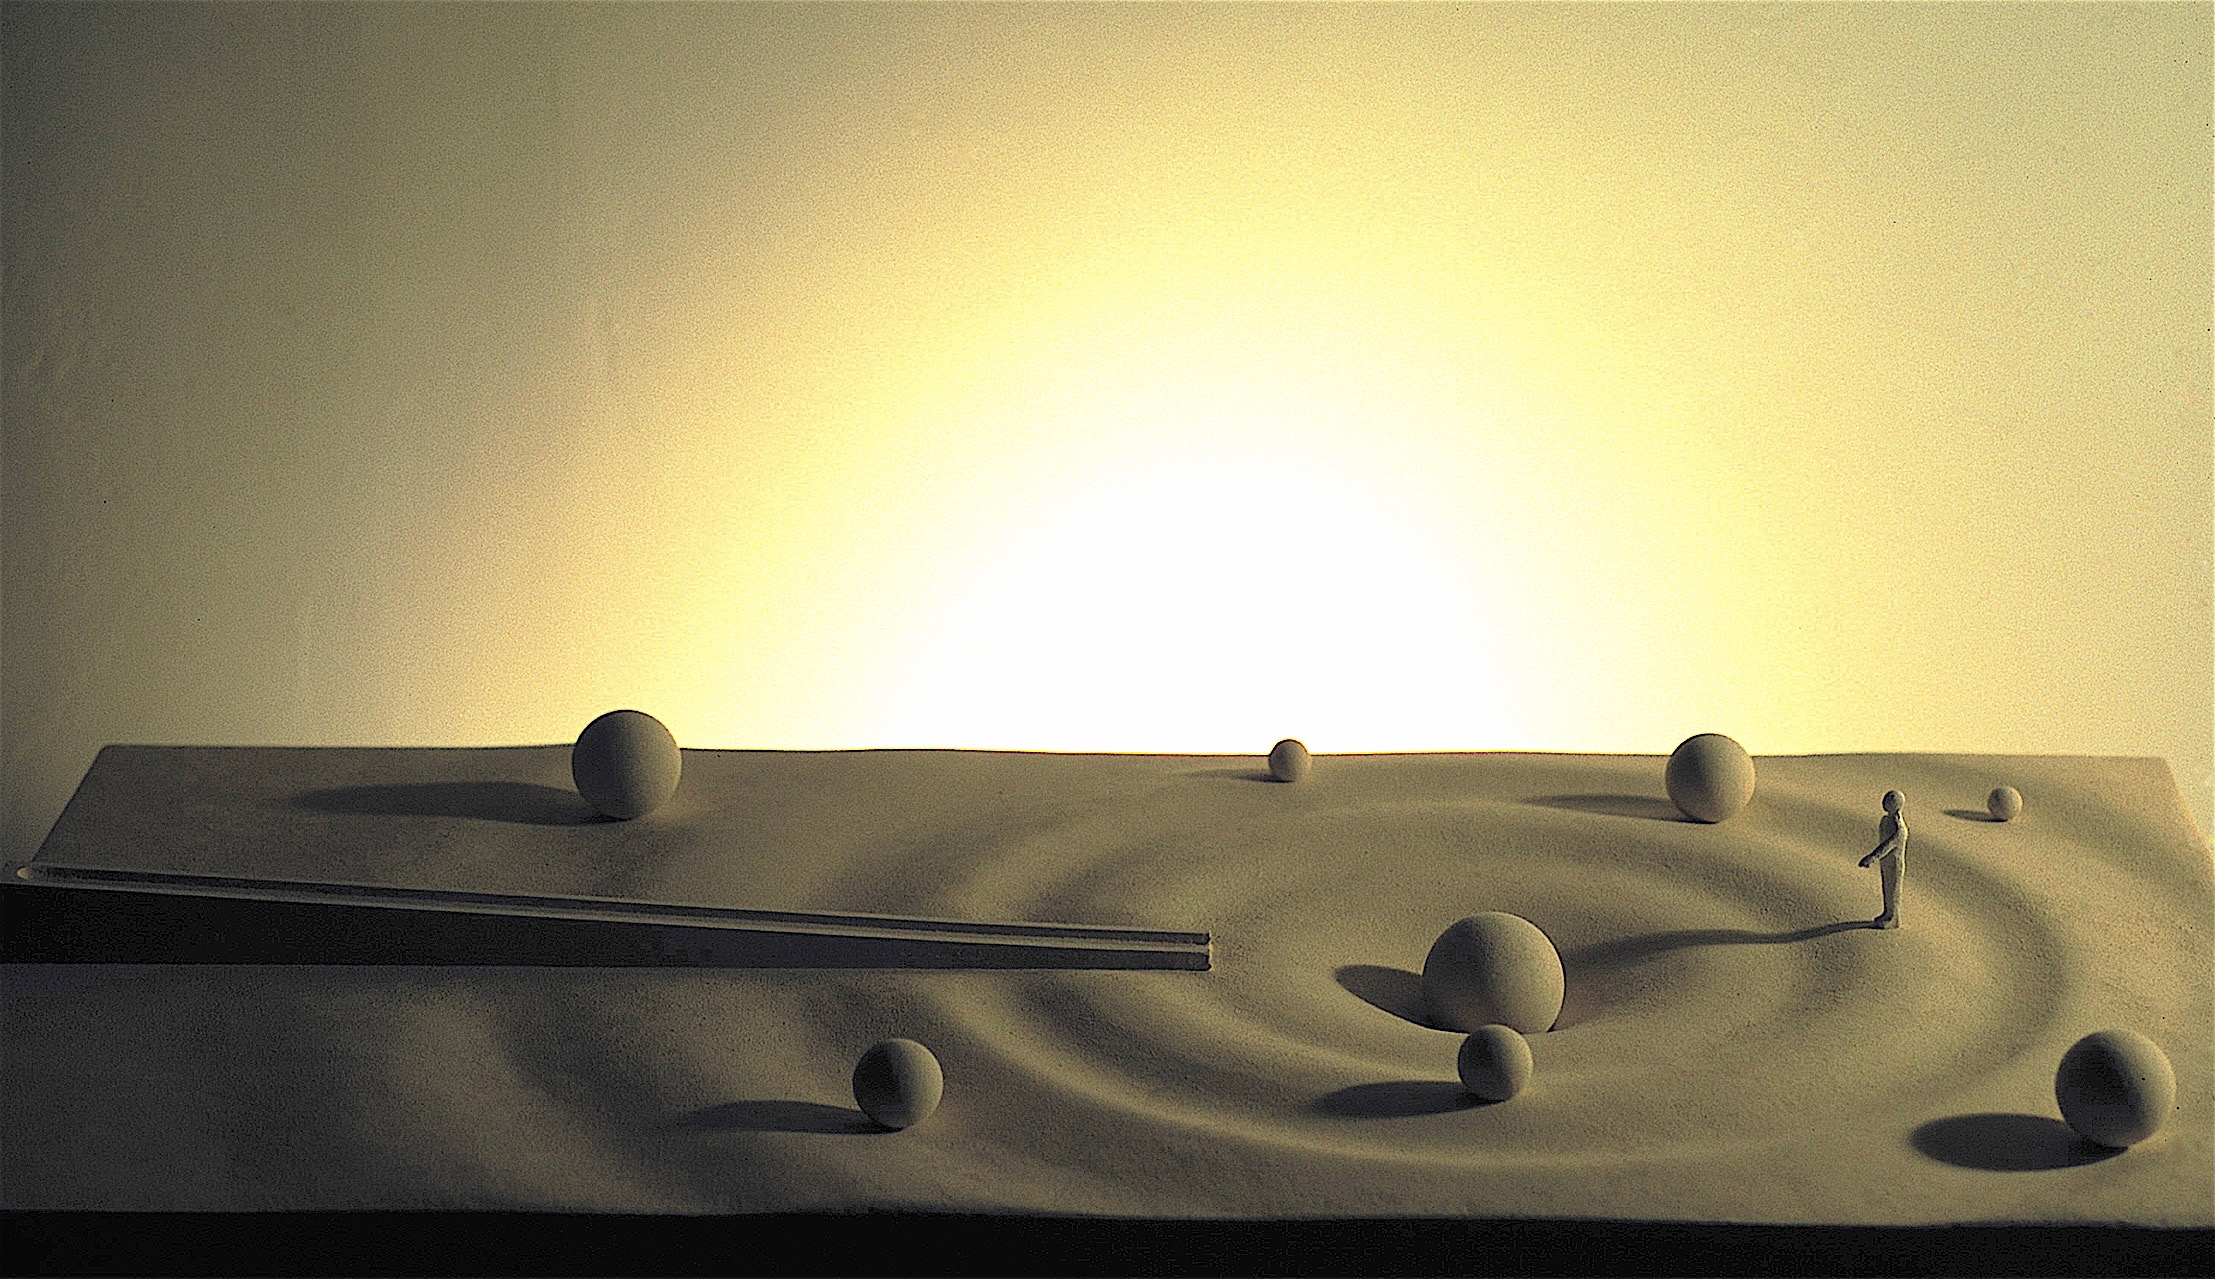 Thomas Coffin - Ripple Effect Fountain, monumental sculpture and earthworks model